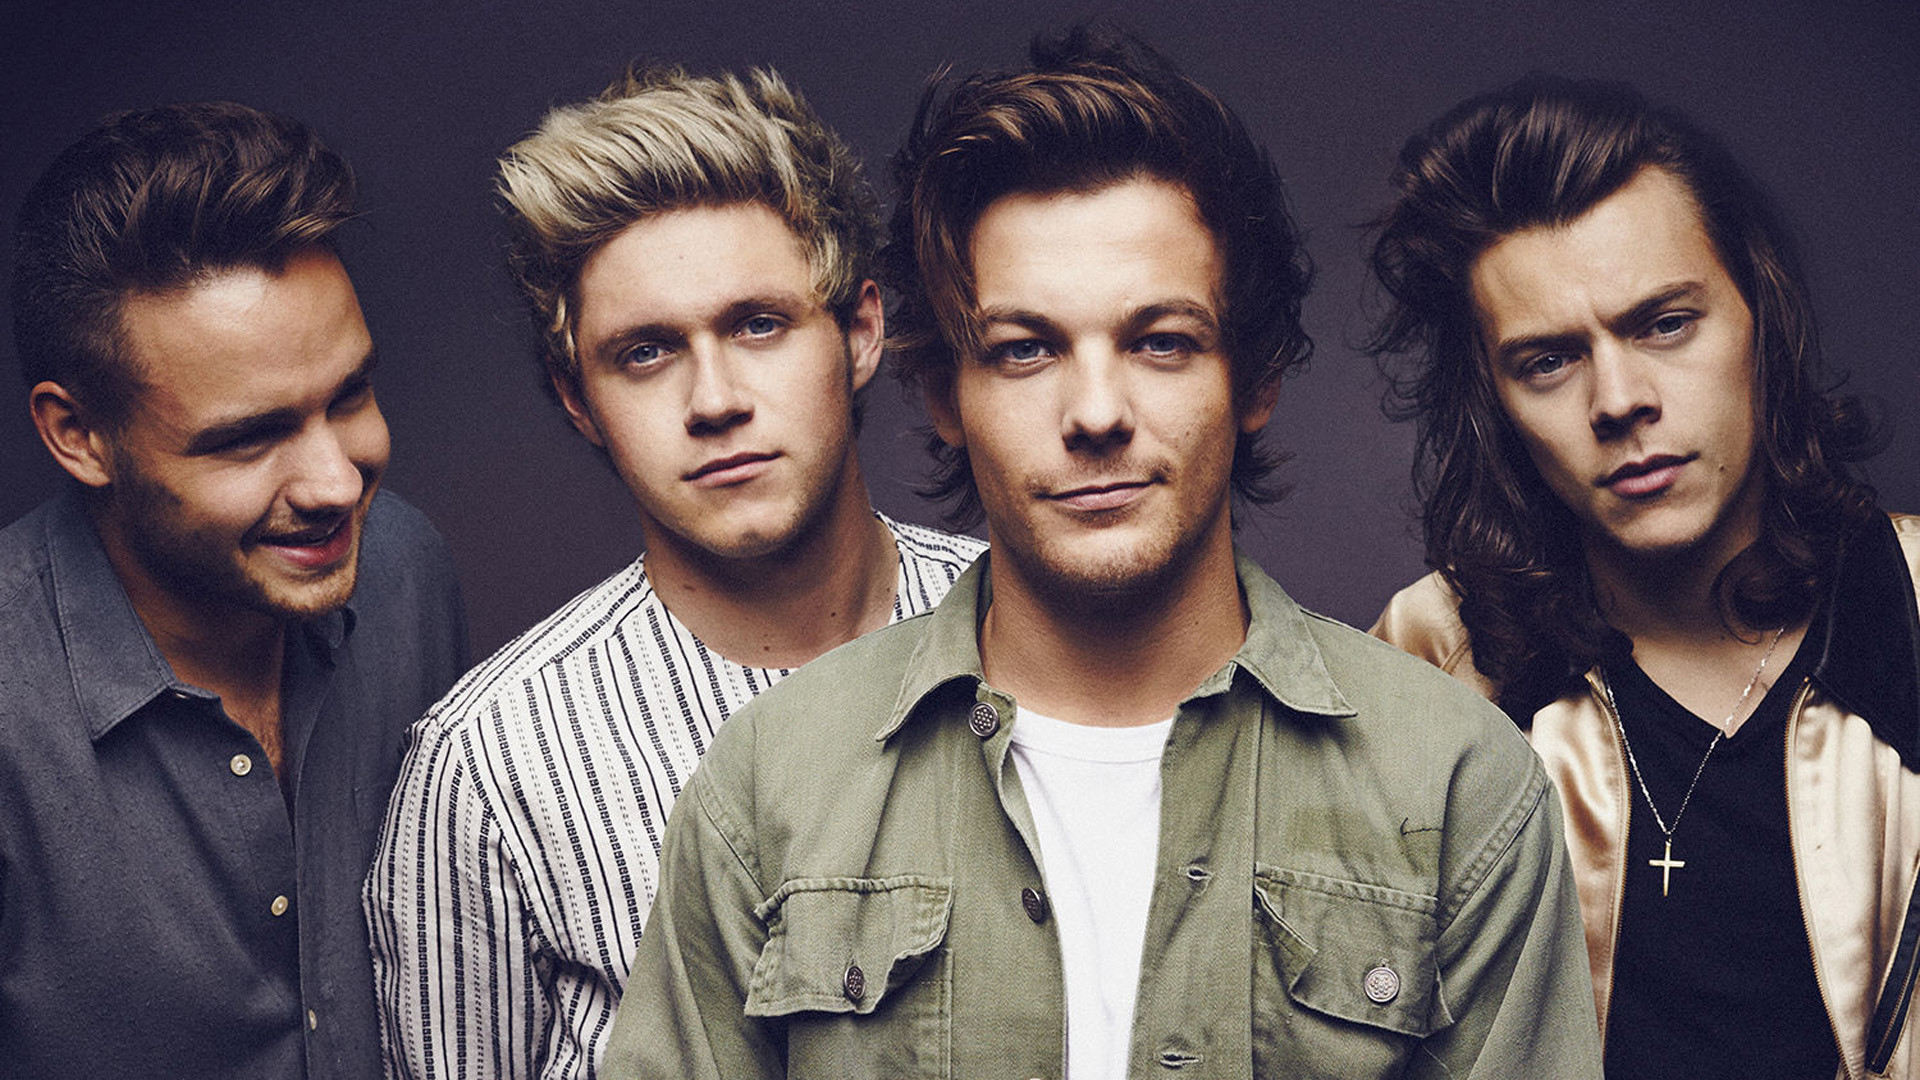 One Direction Full HD Widescreen wallpapers for desktop 1920×1080